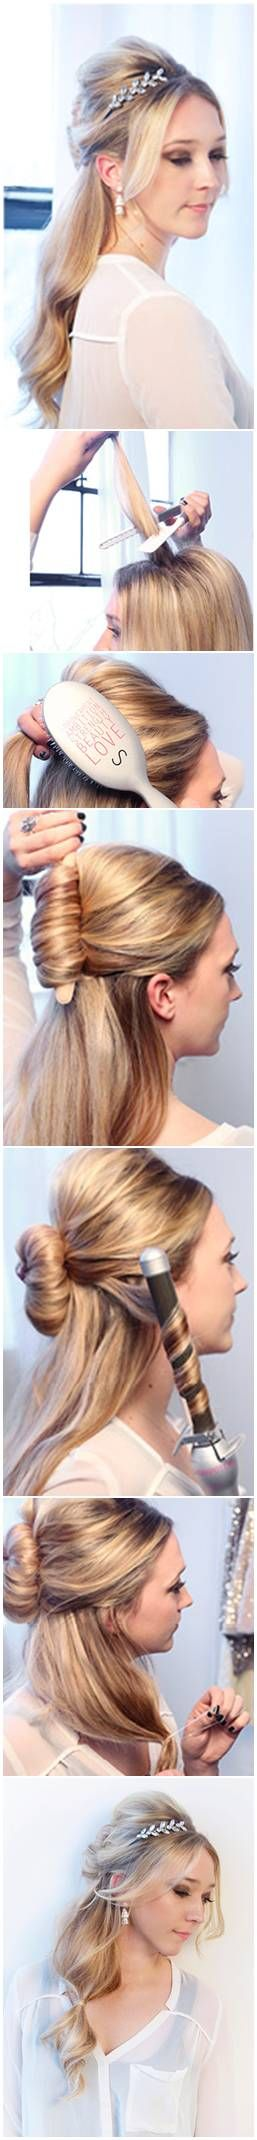 How To: Red carpet hair